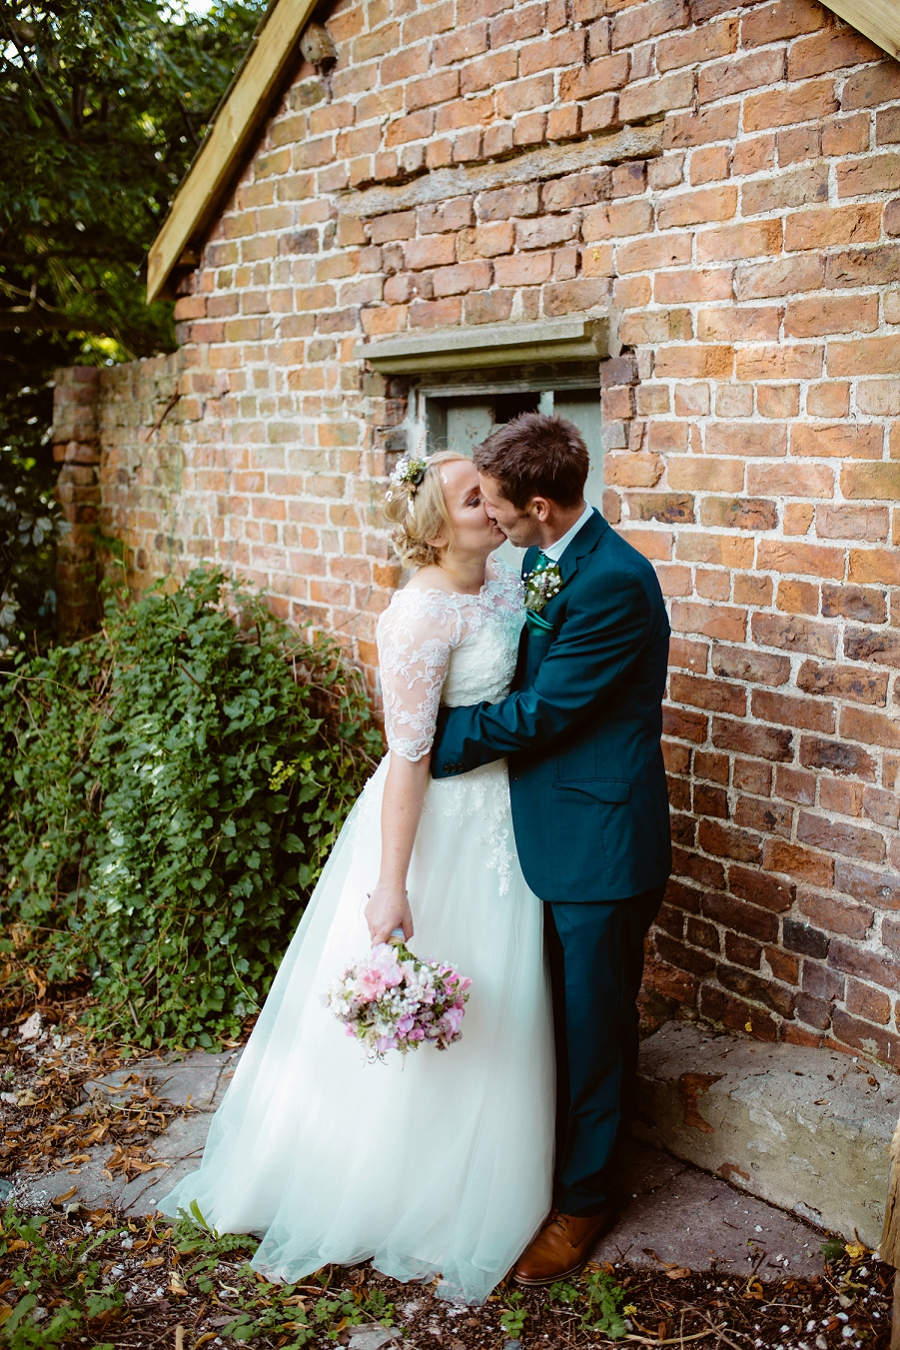 Sarah Janes Photography, Wedding photographer Chester, London, Sheffield, Wirral, Wrexham, Liverpool, Natural wedding photography, Quirky, documentary_0320.jpg